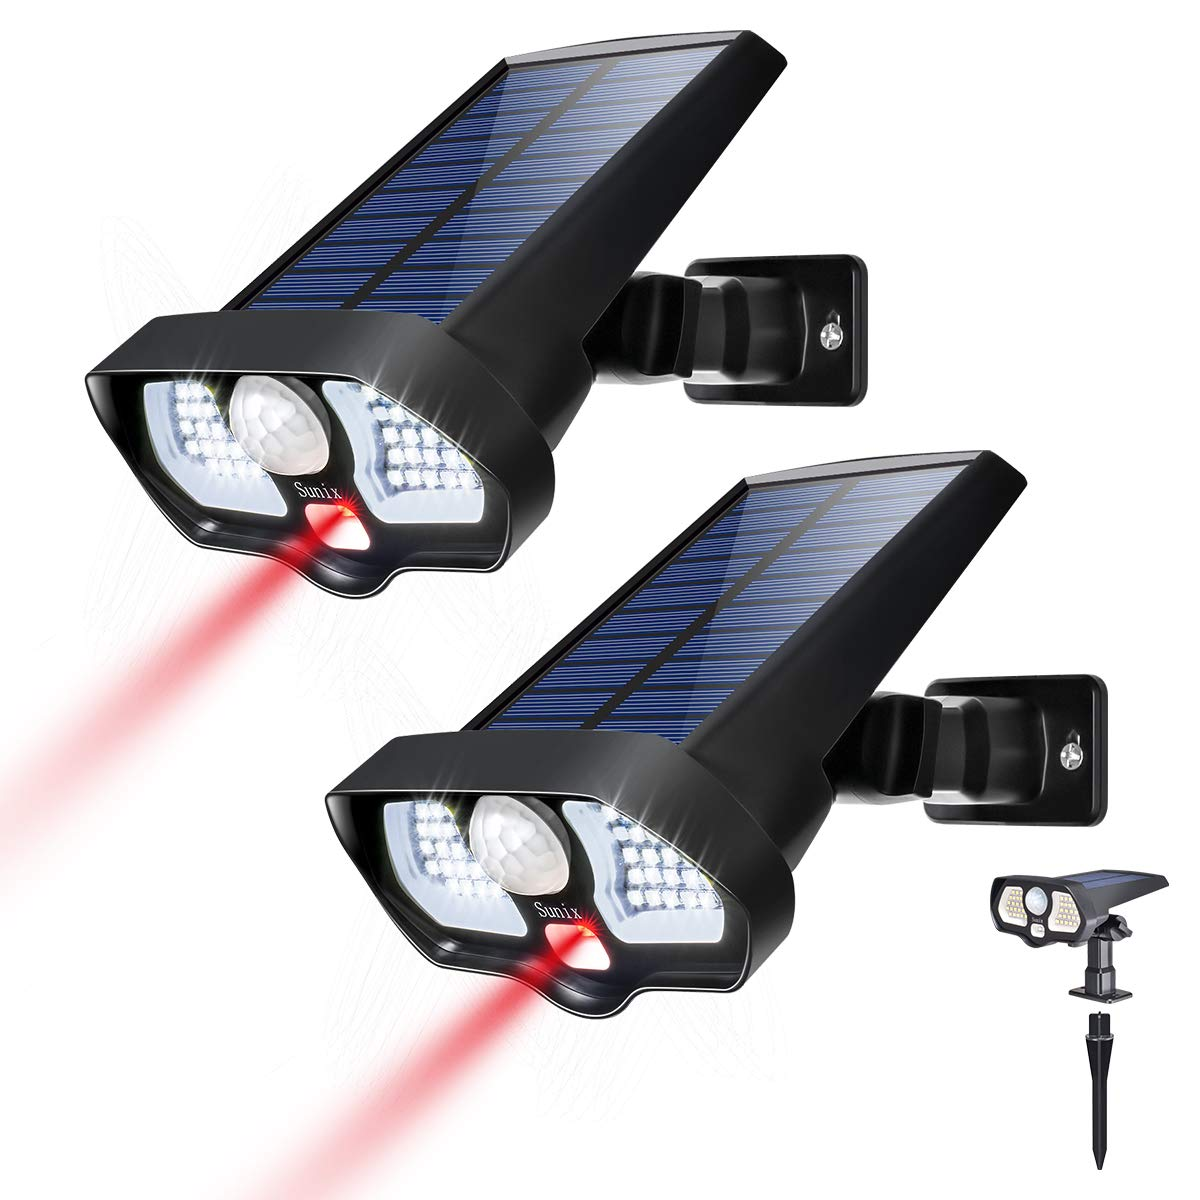 Solar Motion Sensor Light Outdoor 42 White LEDs 2 Red LEDs Ultra Bright, 2 in 1 Landscape Solar Wall Solar Light Wireless Solar Security Light Great Detection for Garden Driveway Carport Patio 2Pack by Sunix